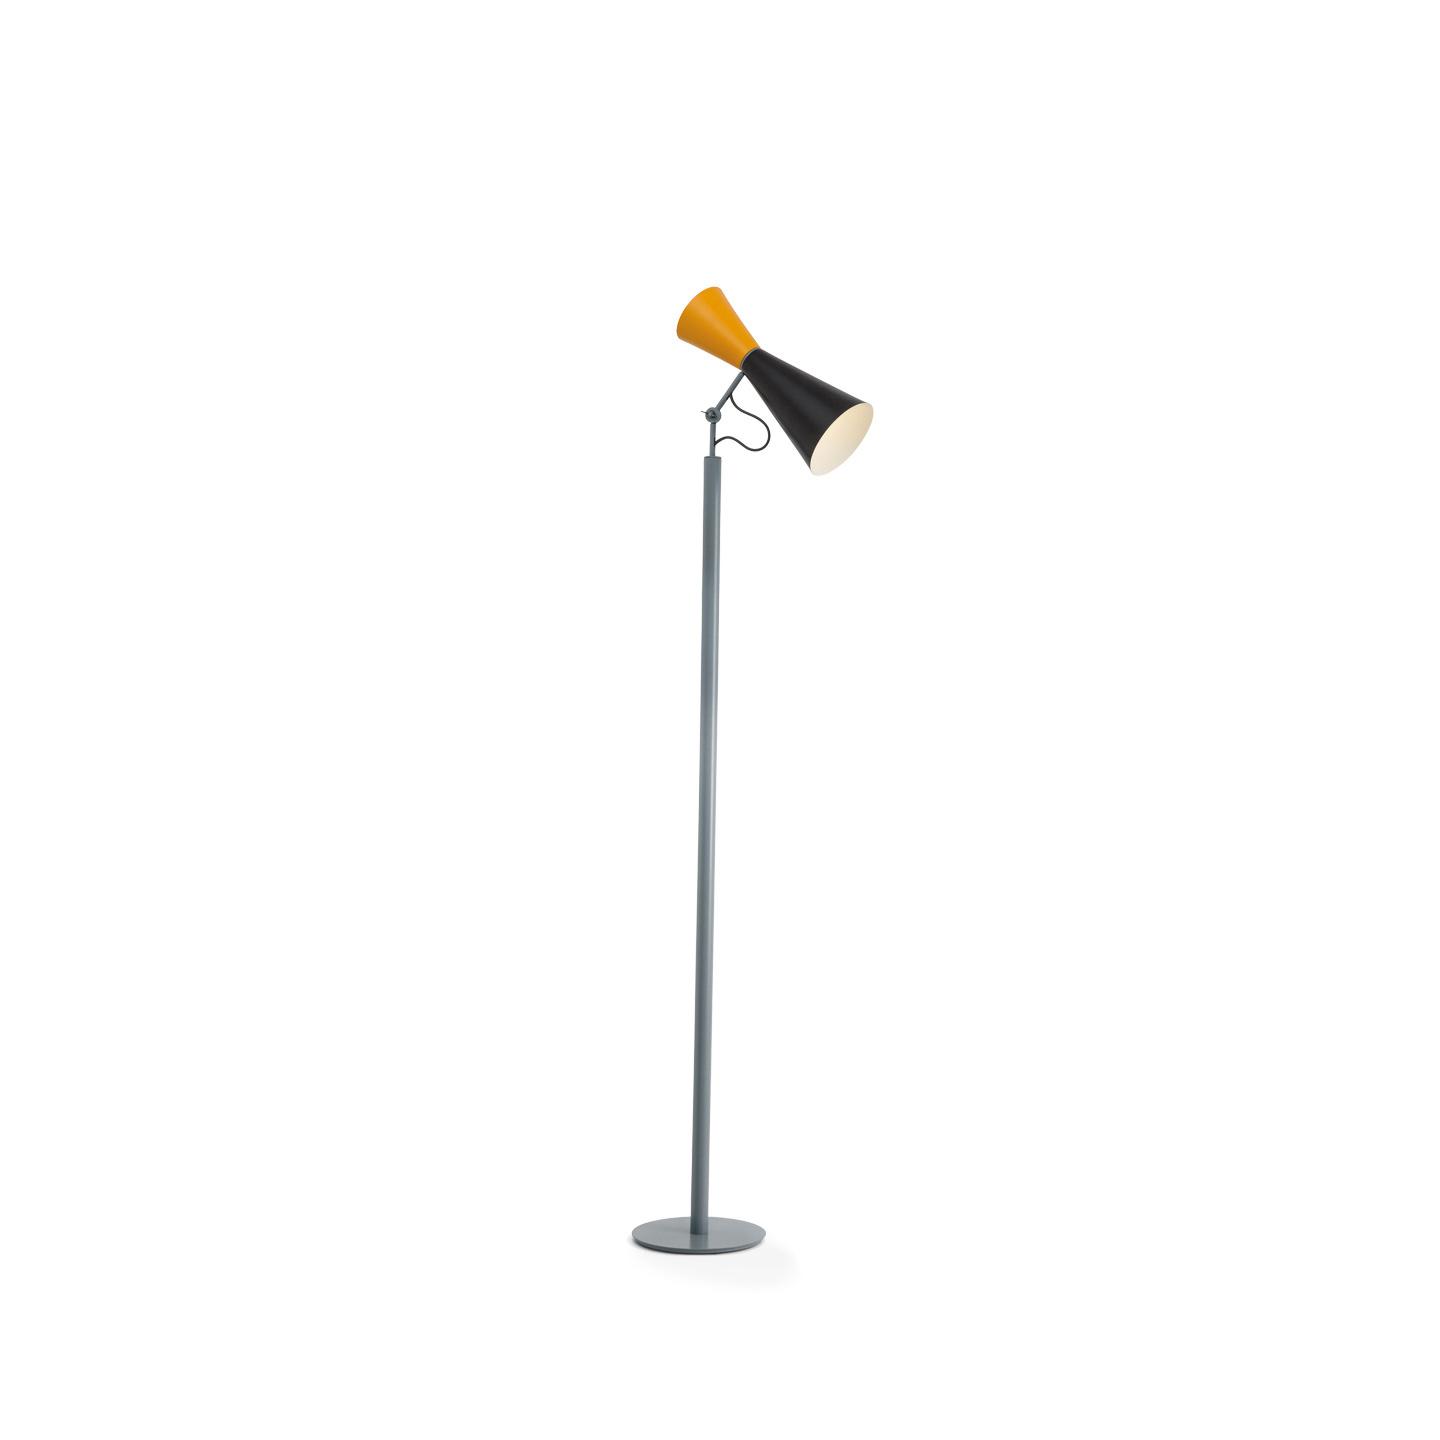 Parliament Floor Lamp - Le Corbusier designed the lamp Parliament for the Chandigarh Parliament in India.‎ Floor lamp, double adjustable emission, in painted aluminium with diffusers matt black and yellow or white and grey and in the new finishing matt black and red.‎ Whitewash internal diffusers.‎ Stem matt grey.‎ Prices are with bulb not included.